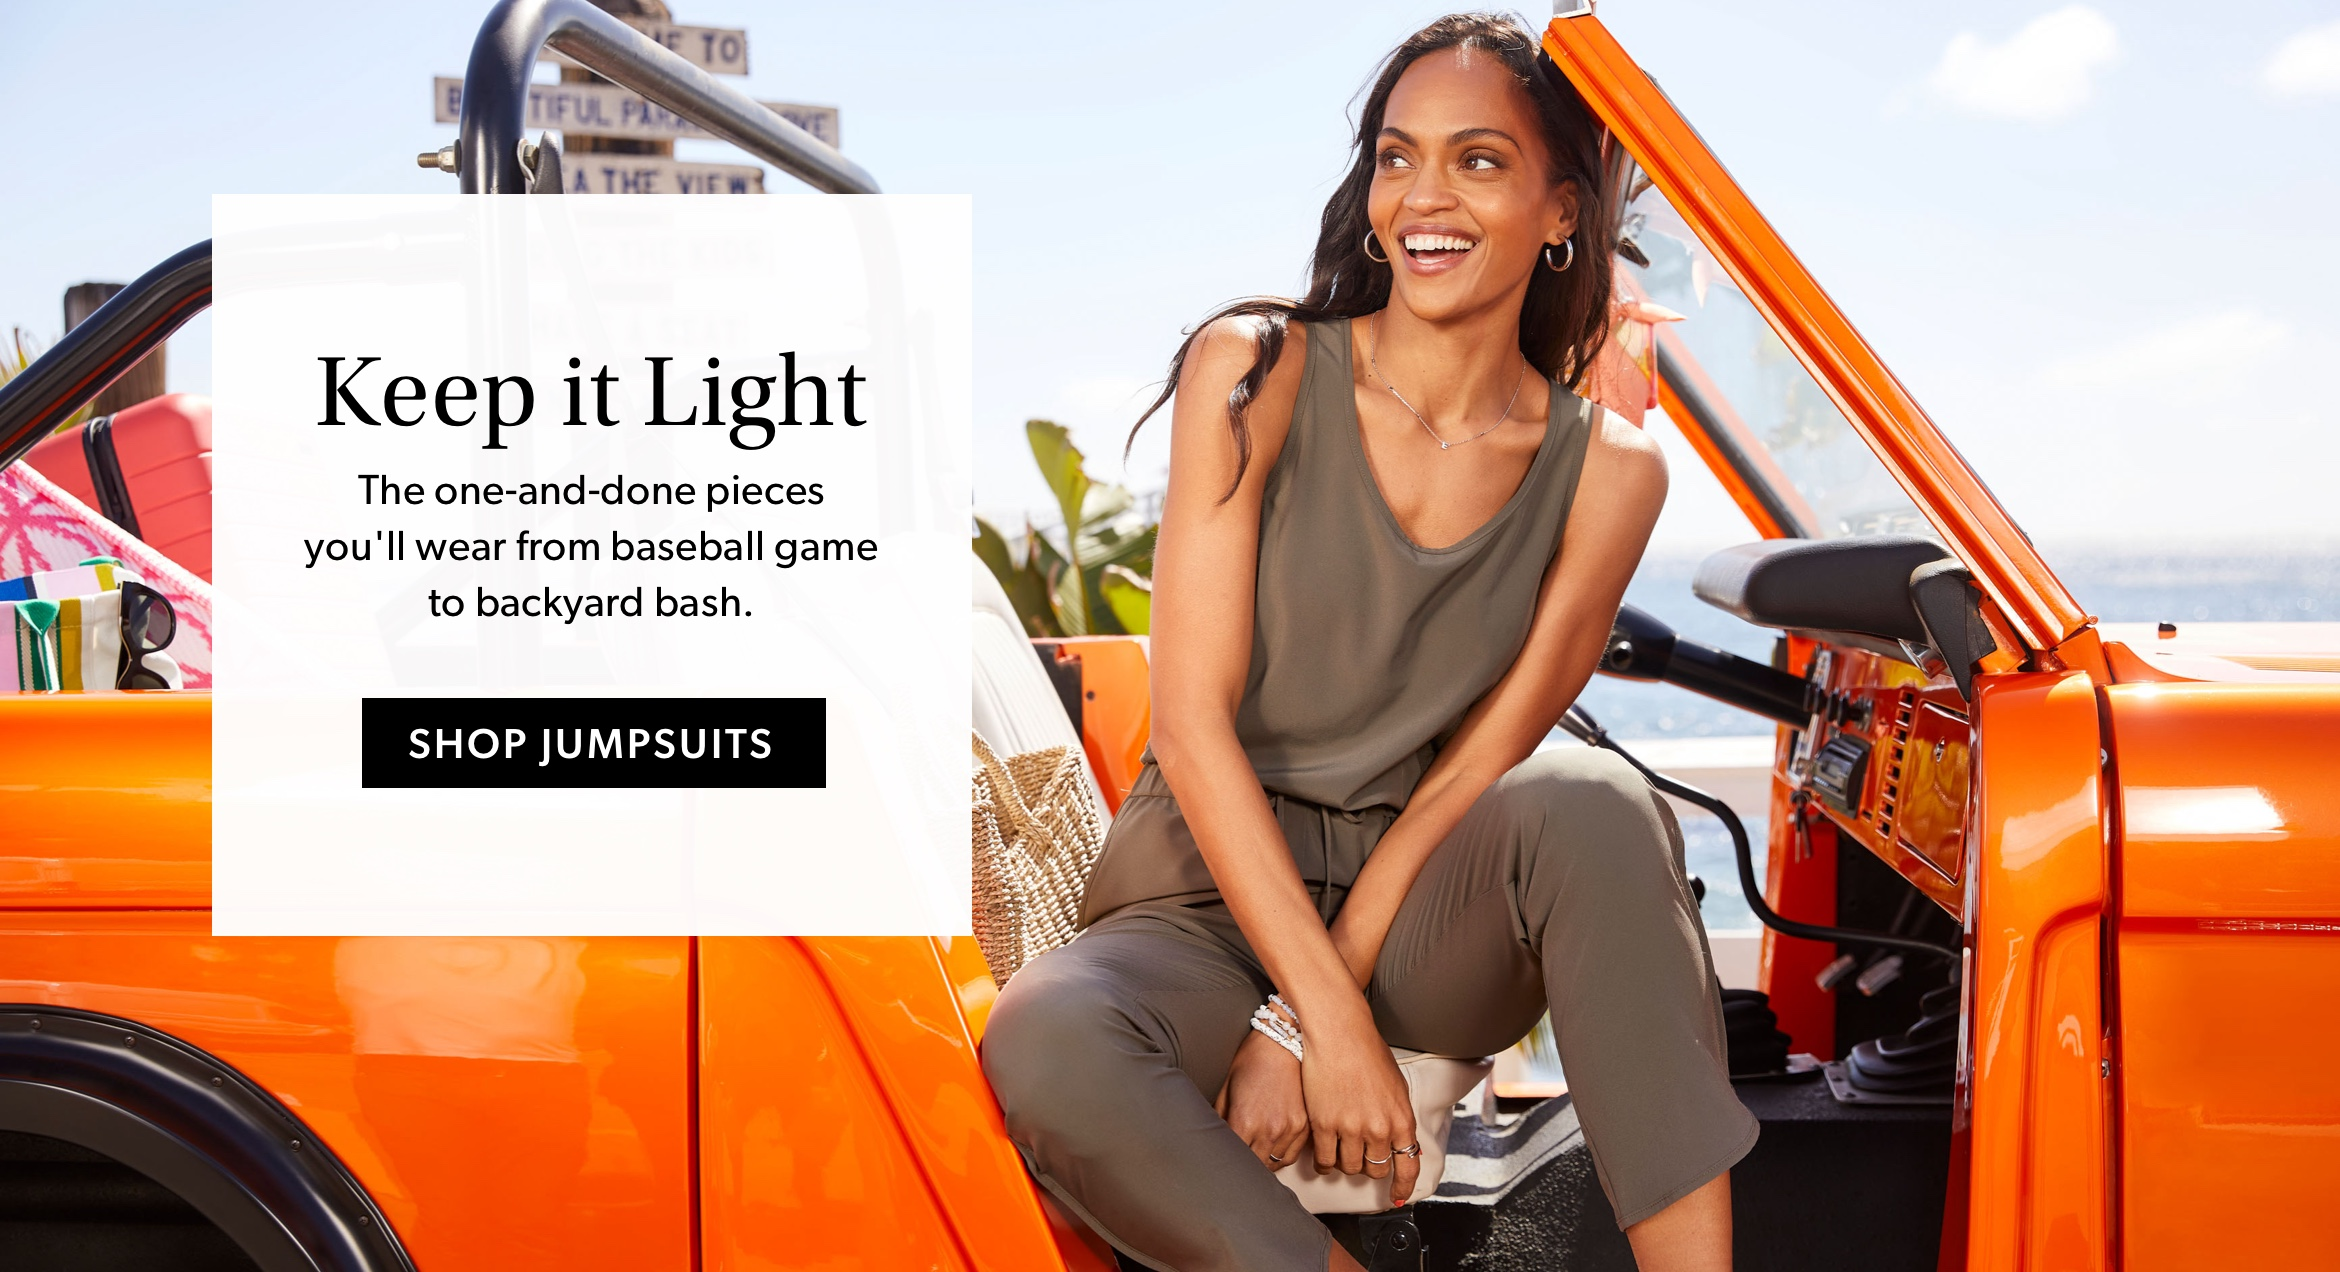 Keep it Light- The one-and-done pieces you'll wear from baseball game to backyard bash. - SHOP JUMPSUITS.